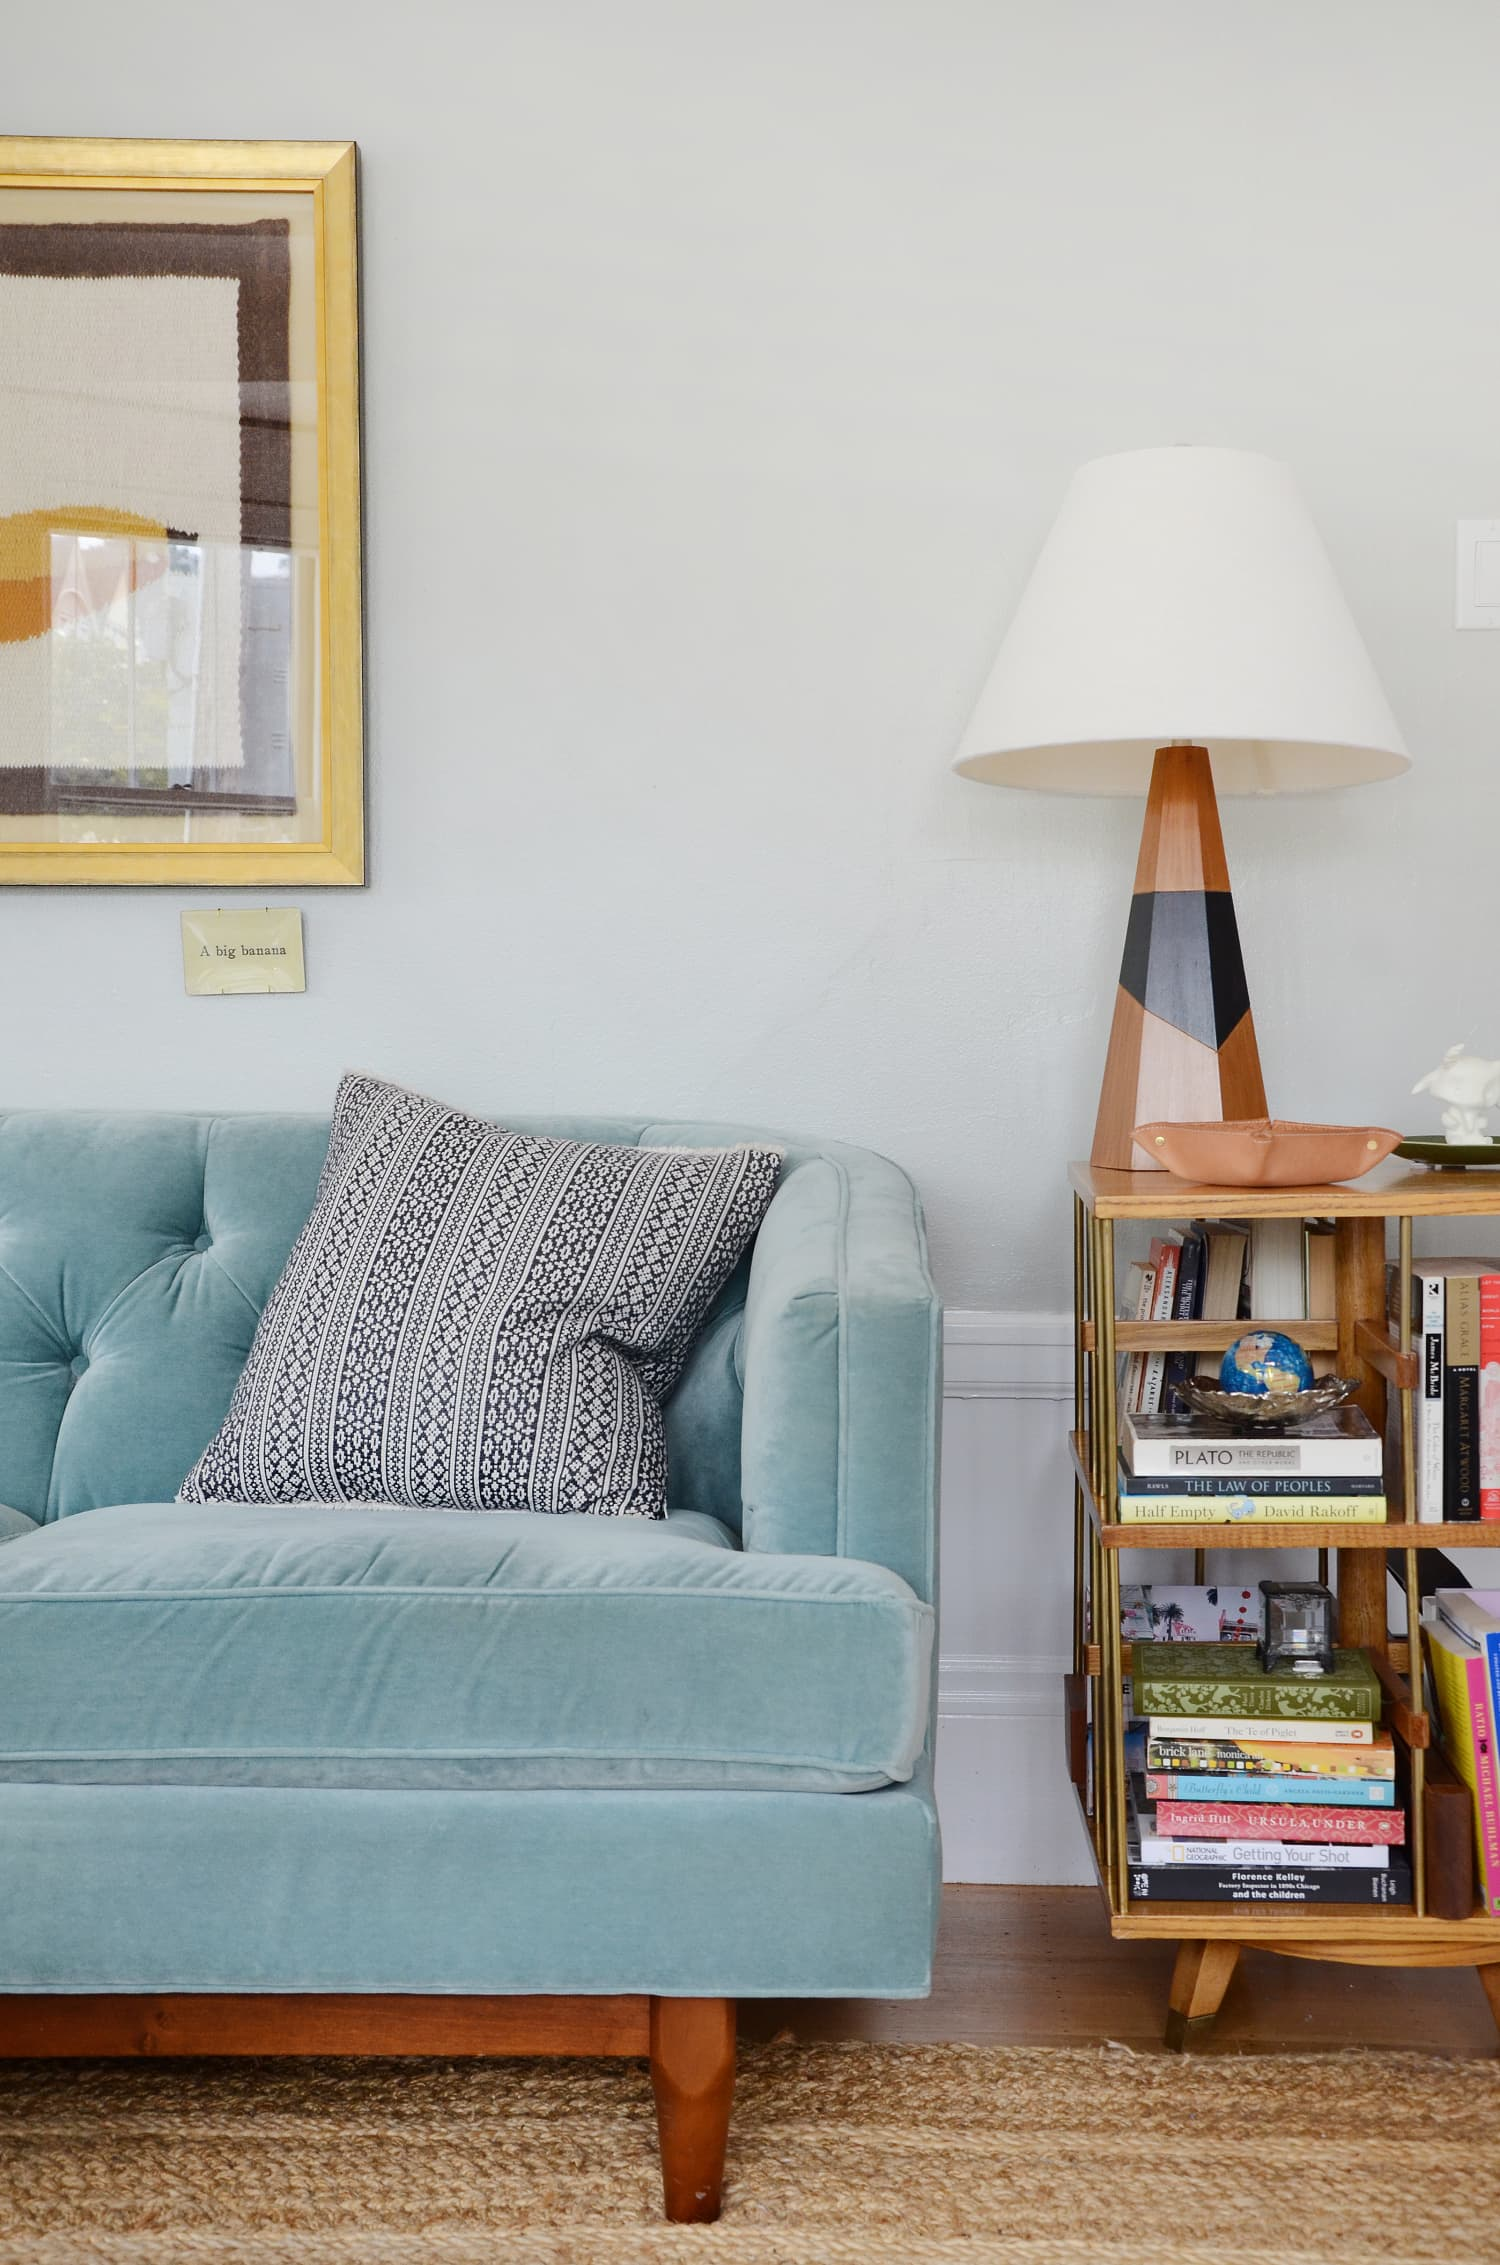 Small Space Solutions Living Room: Small Space Surface Solutions